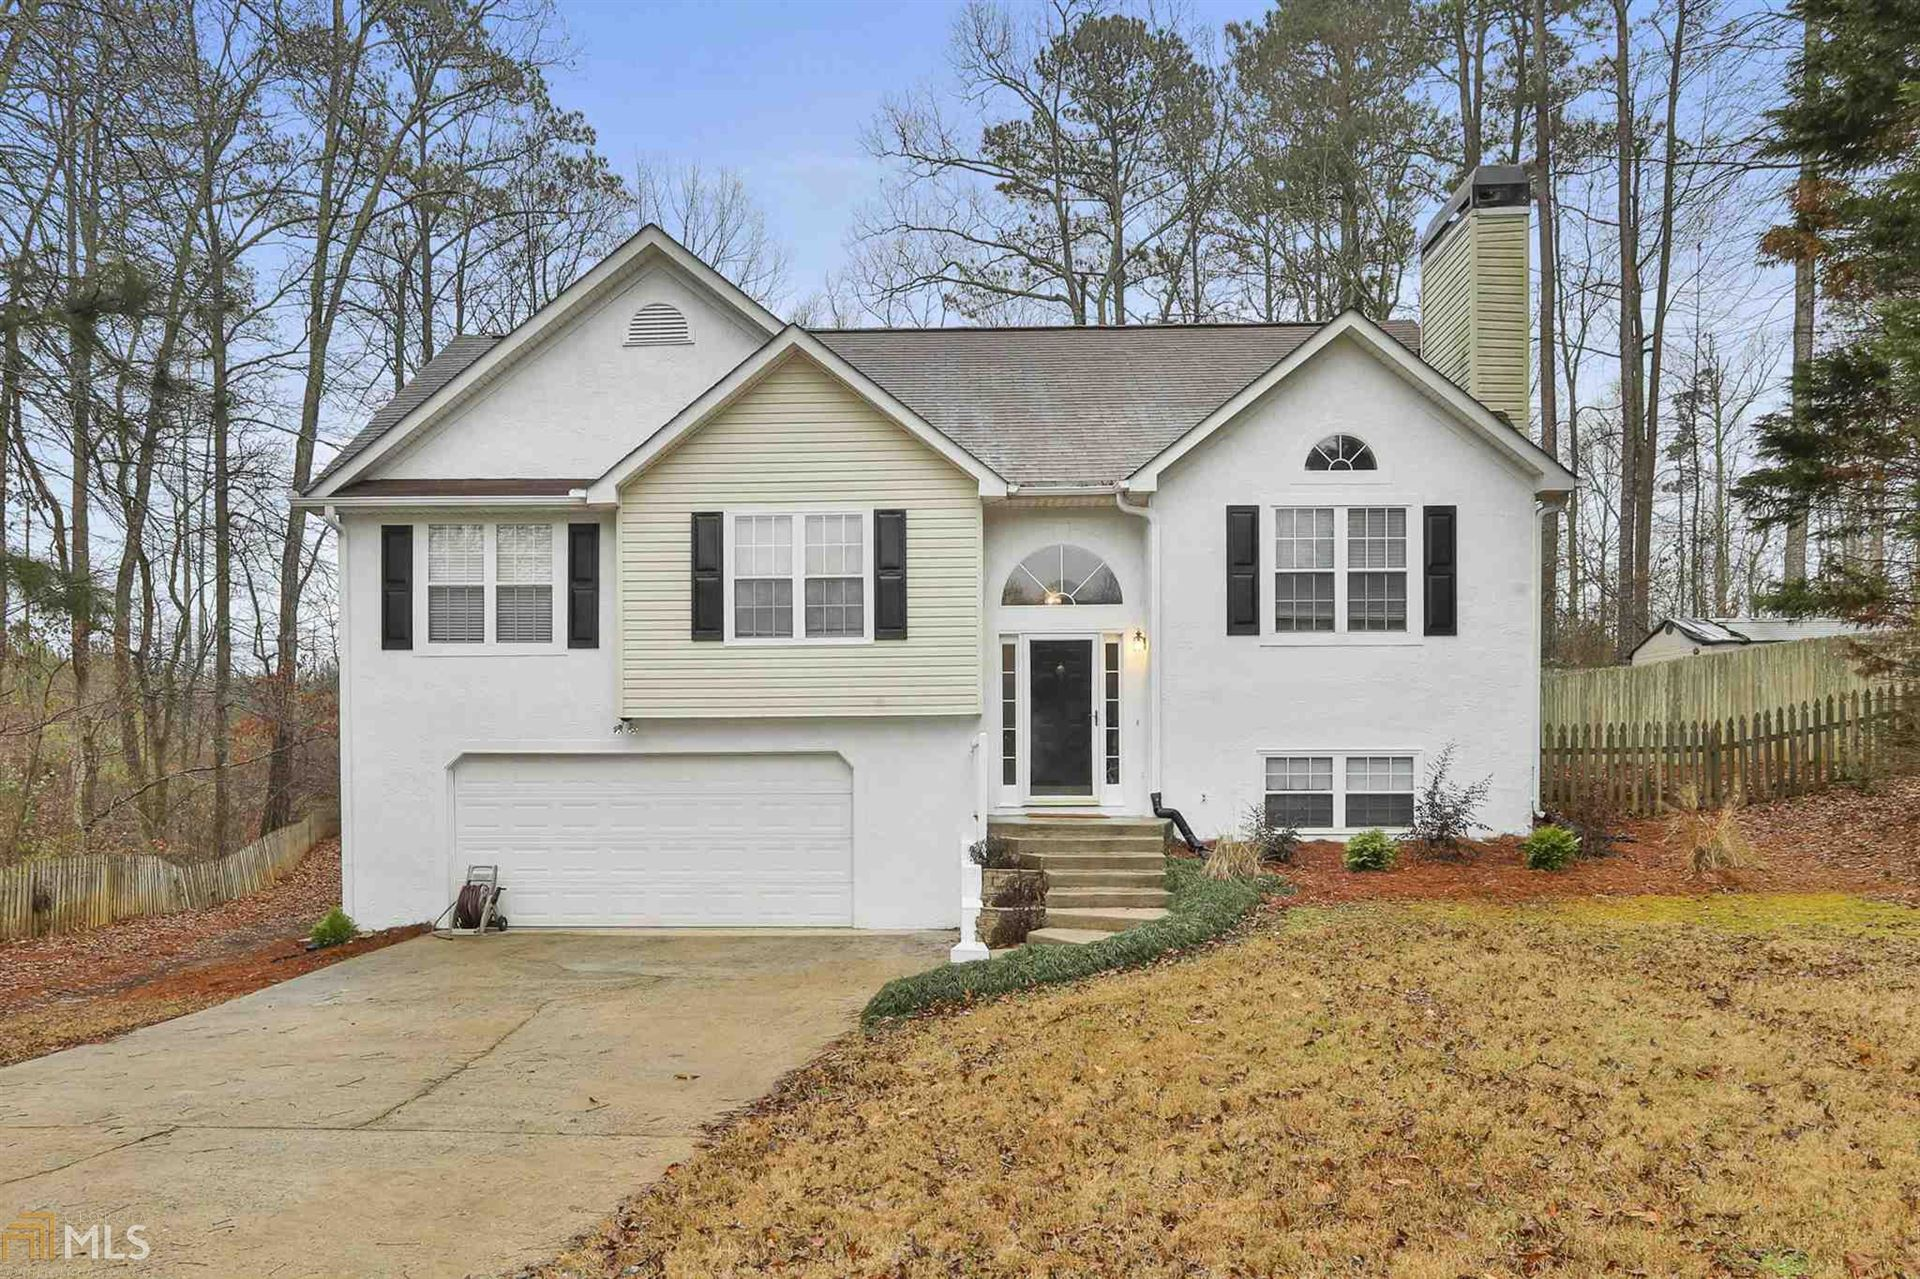 85 Northfield Dr, Newnan, GA 30265 - MLS#: 8917336